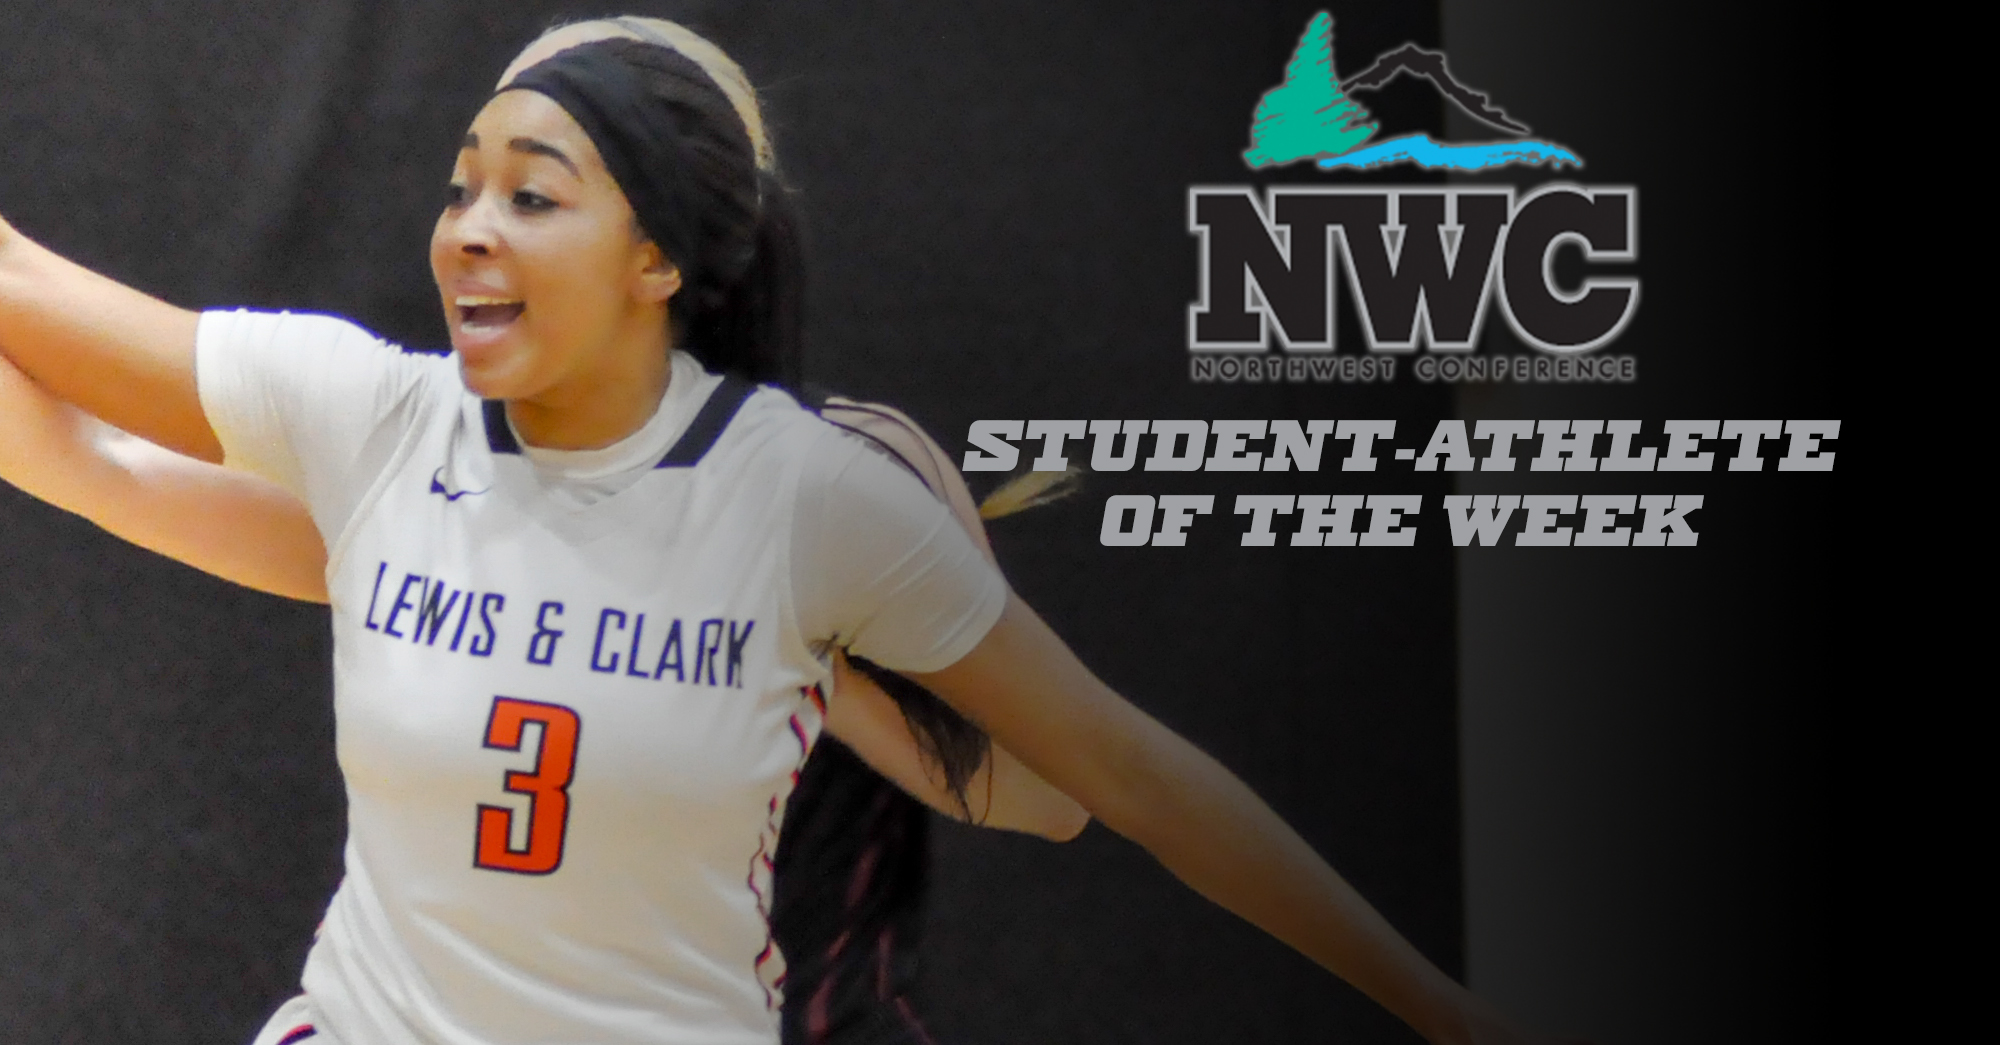 Career-high 27 points propels Afolabi to second NWC honor of the season